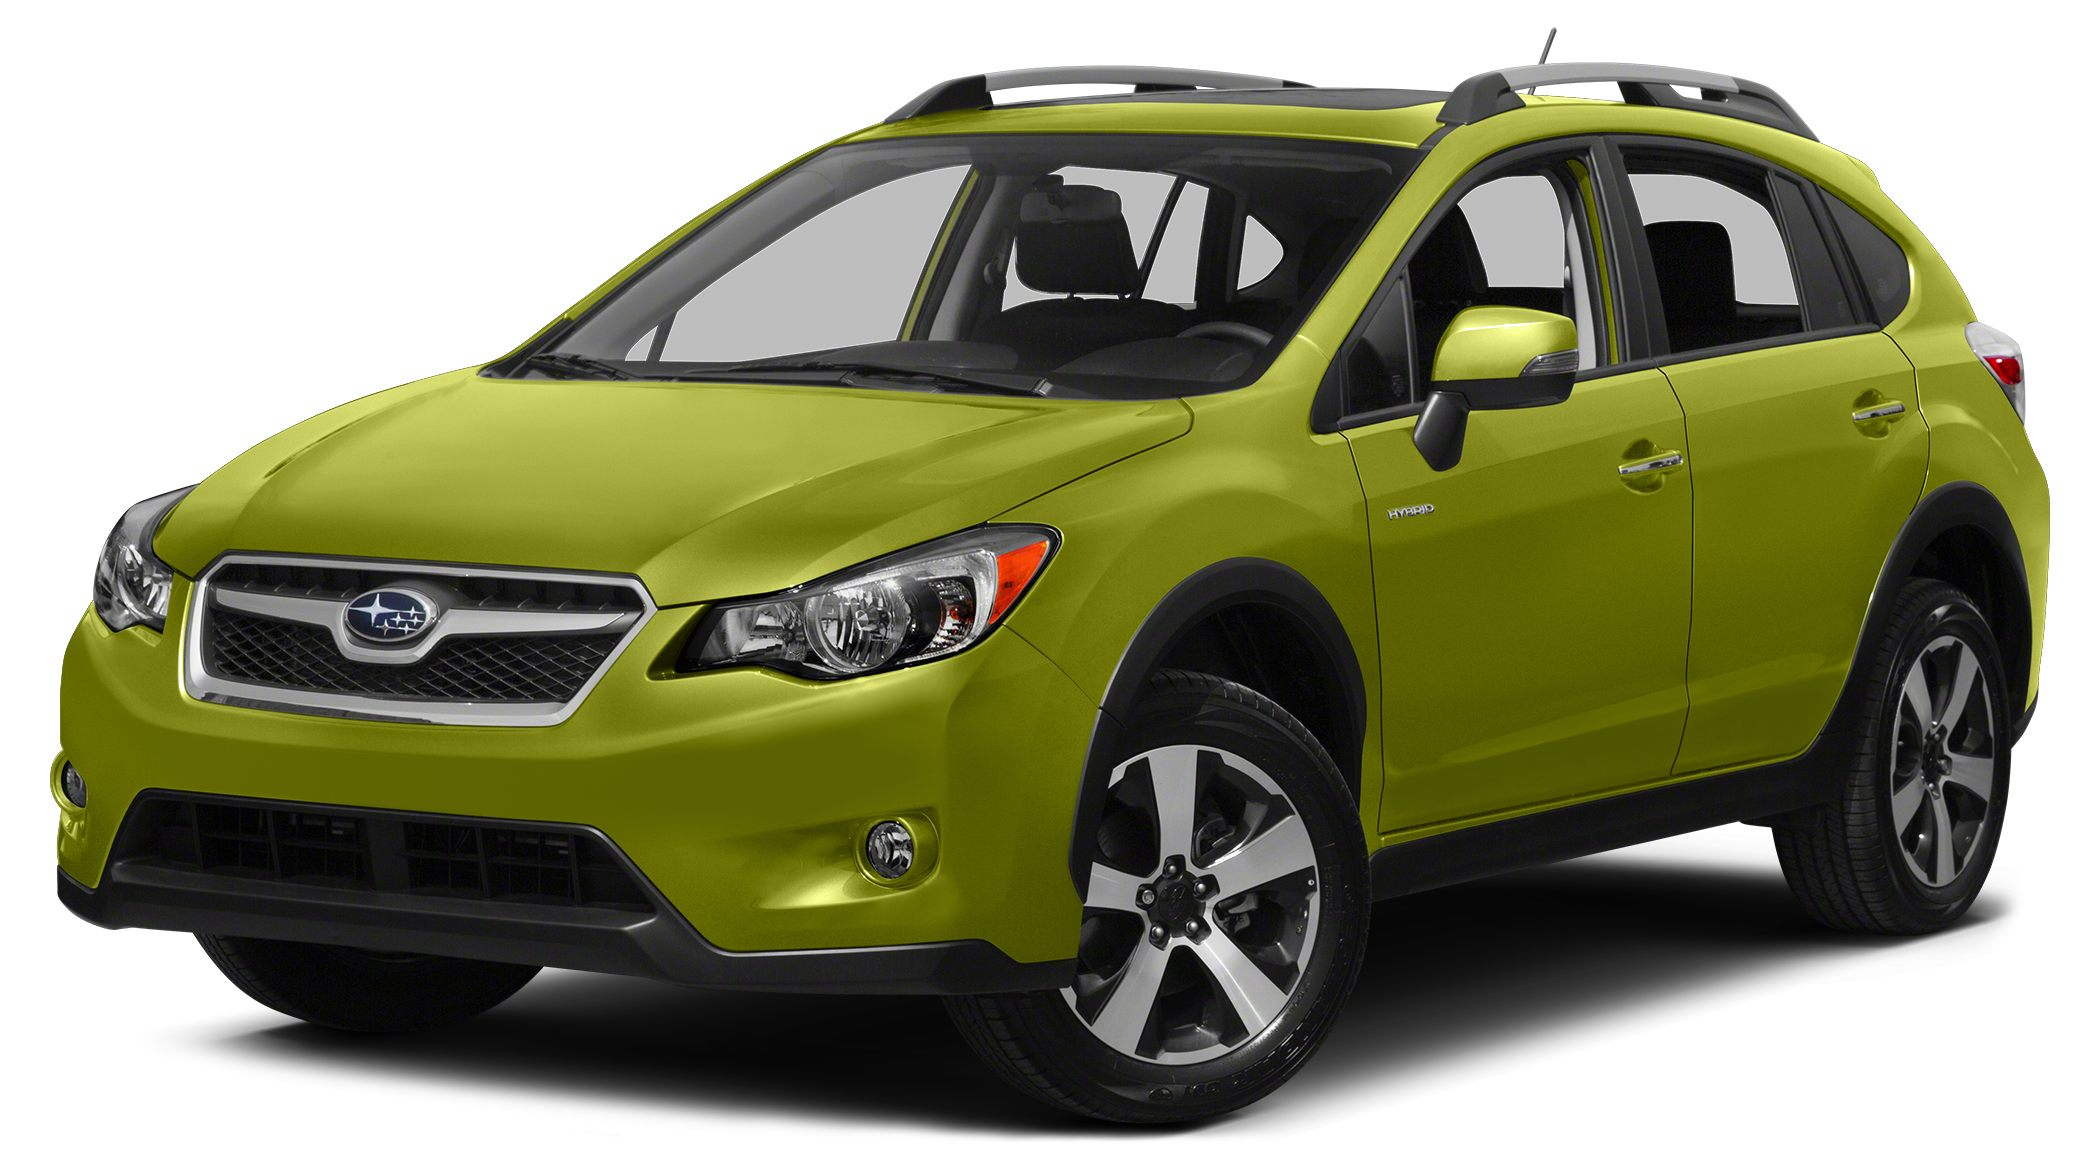 2015 Subaru XV Crosstrek Hybrid Touring Prices are PLUS tax tag title fee 799 Pre-Delivery S